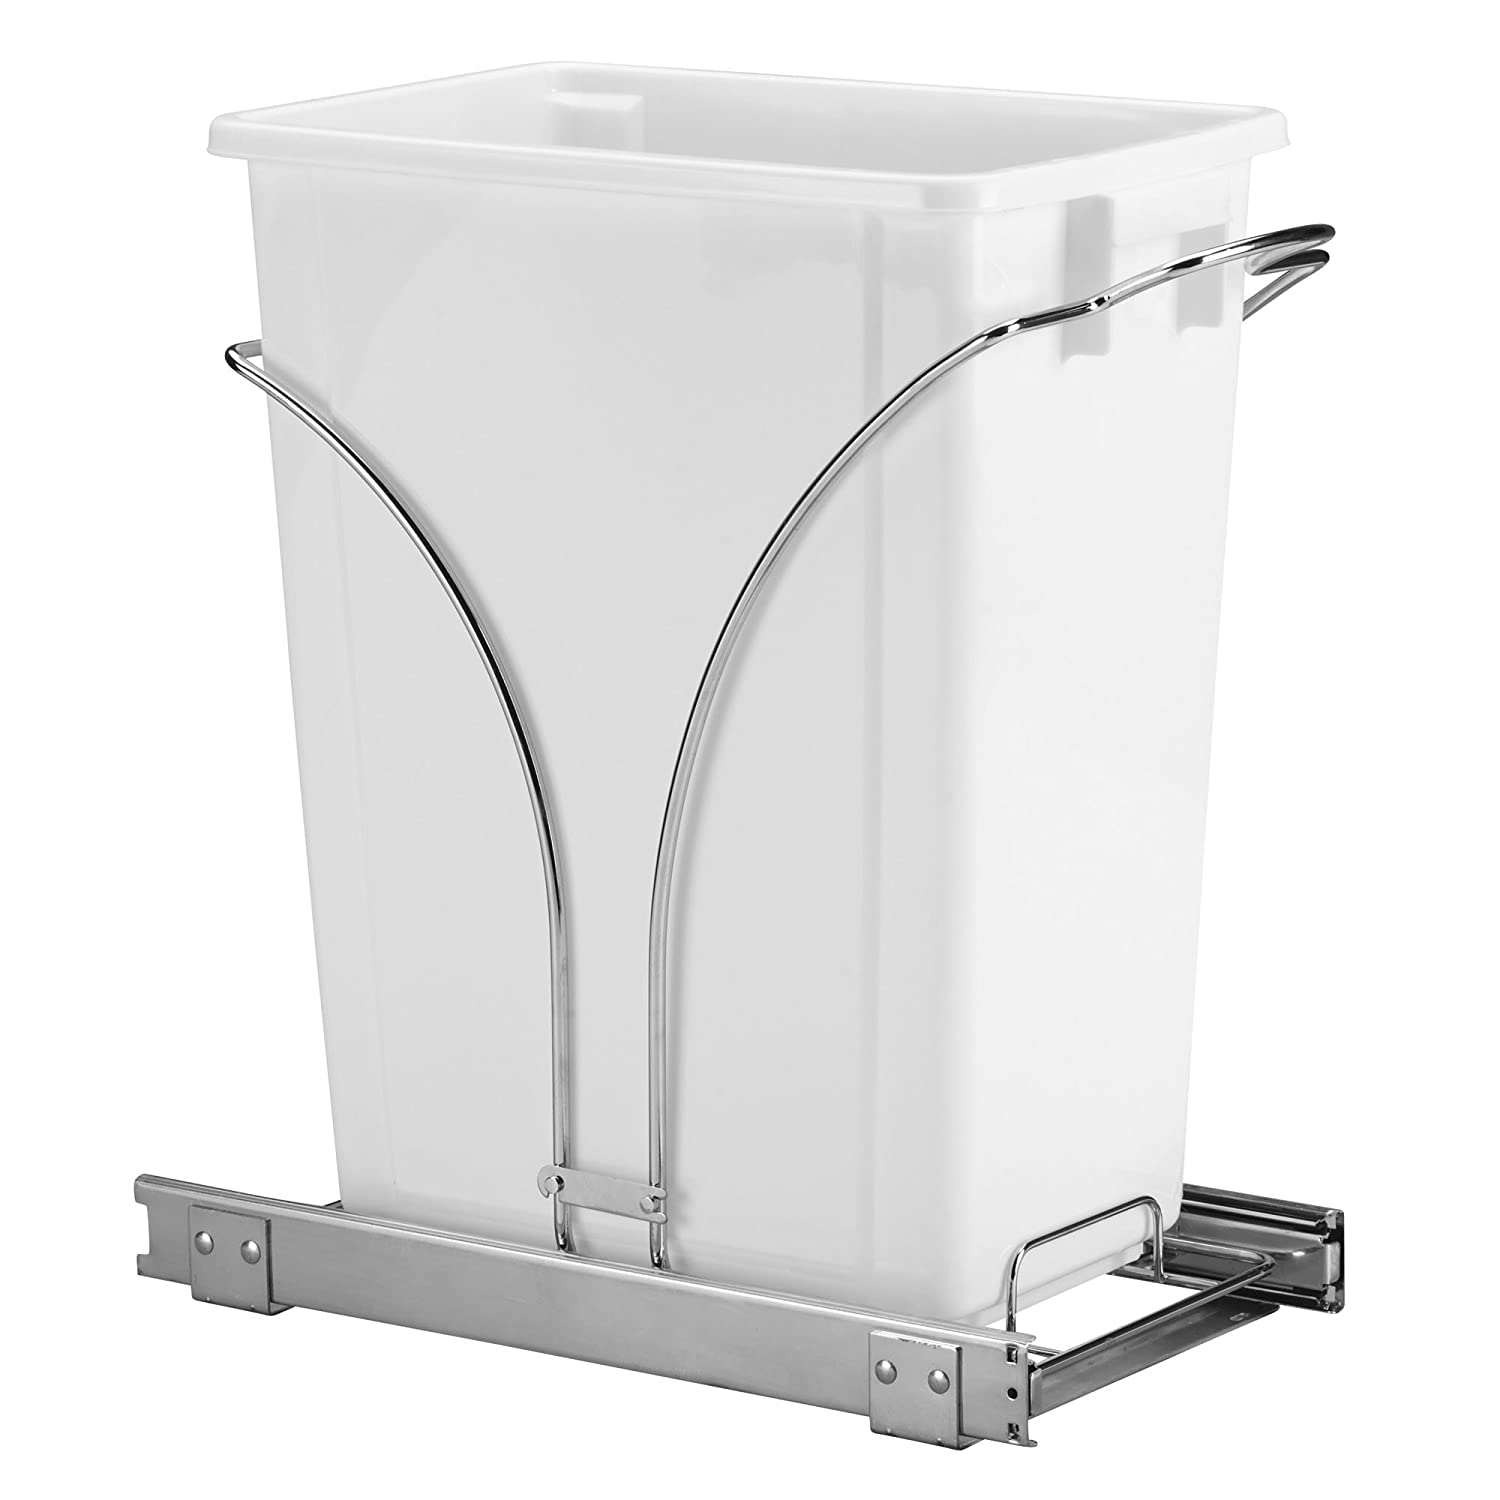 Delicieux Amazon.com: Household Essentials Under Cabinet Single Sliding Trash Can  Caddy, 9 Gallon: Home U0026 Kitchen